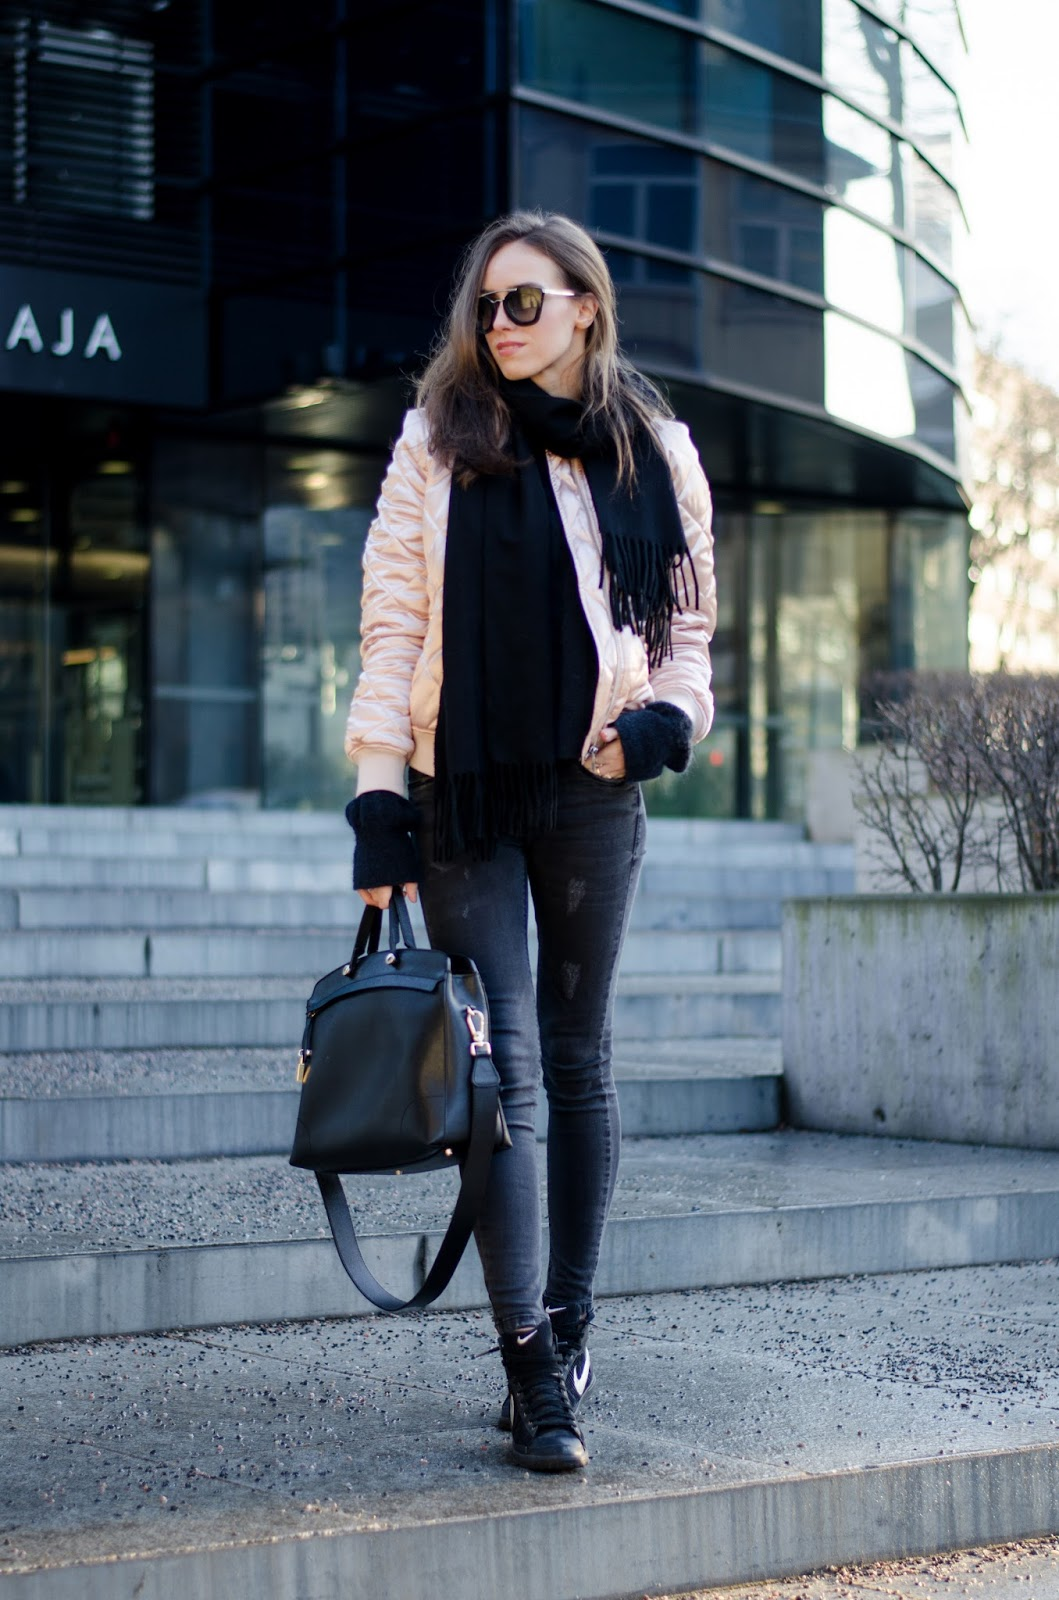 kristjaana mere pink bomber jacket black jeans winter outfit